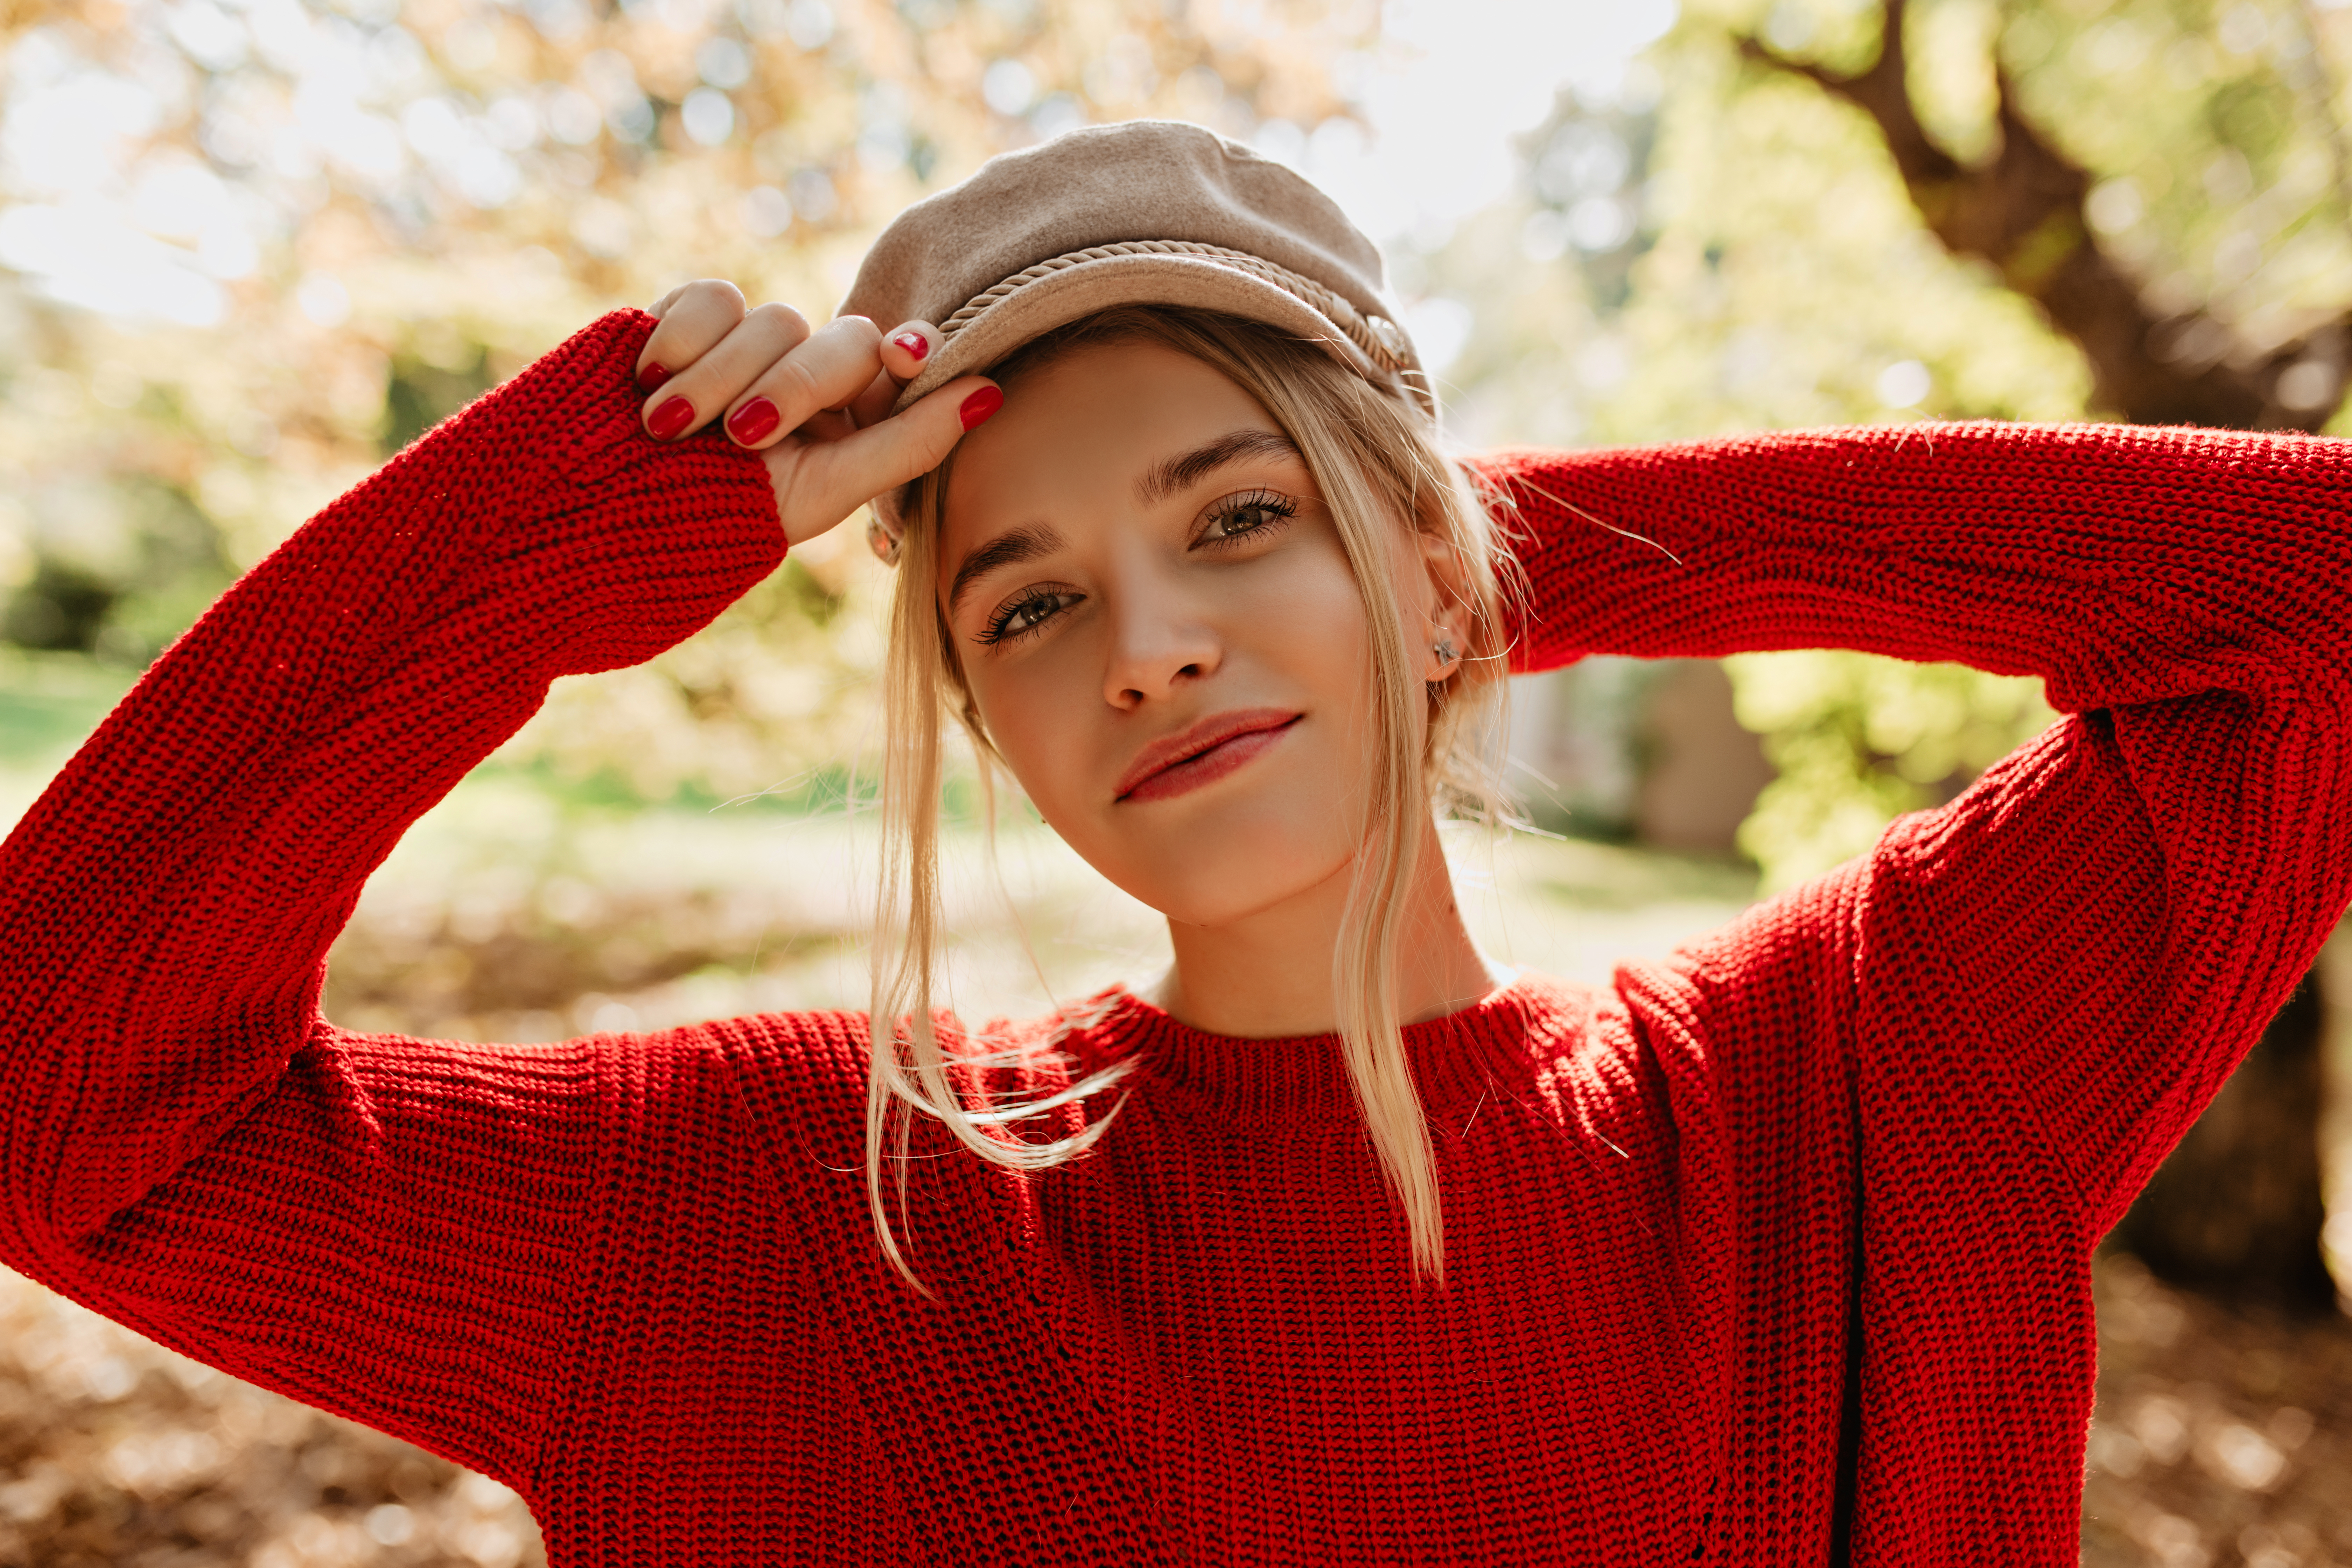 Charming girl in nice light hat and red sweater looking in the c